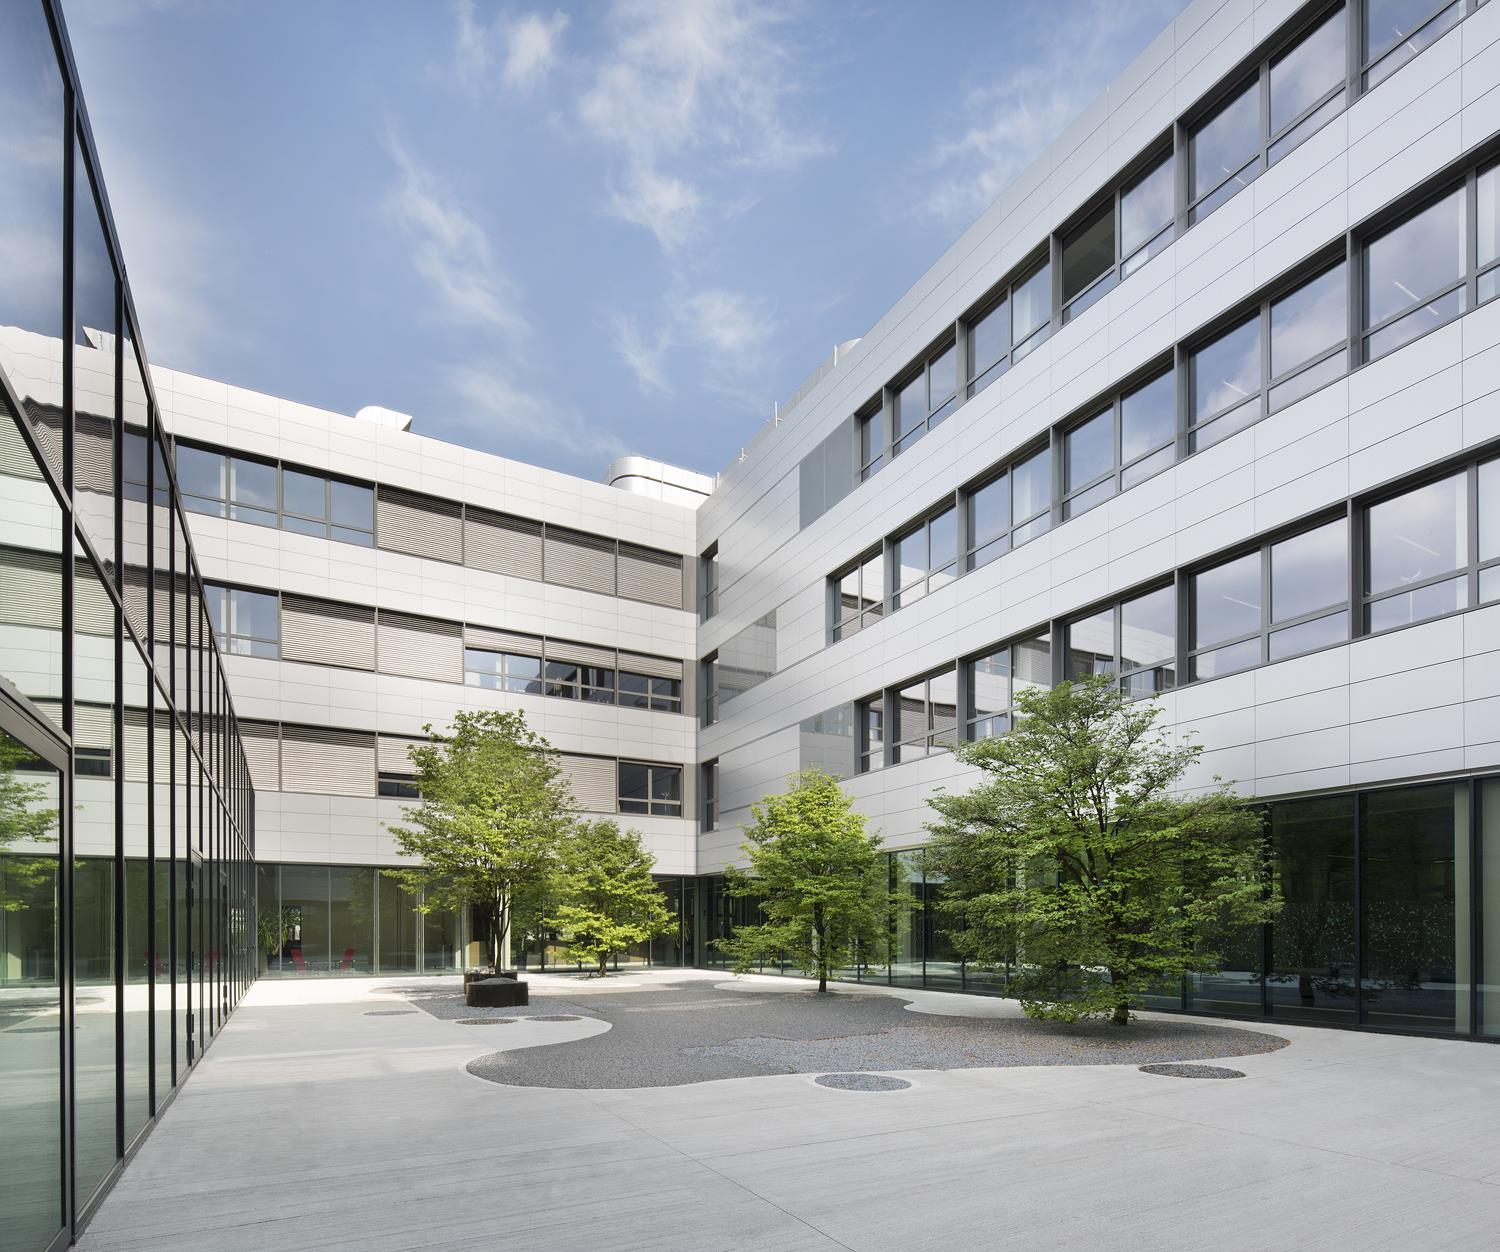 Siemens Headquarter: Photo 8